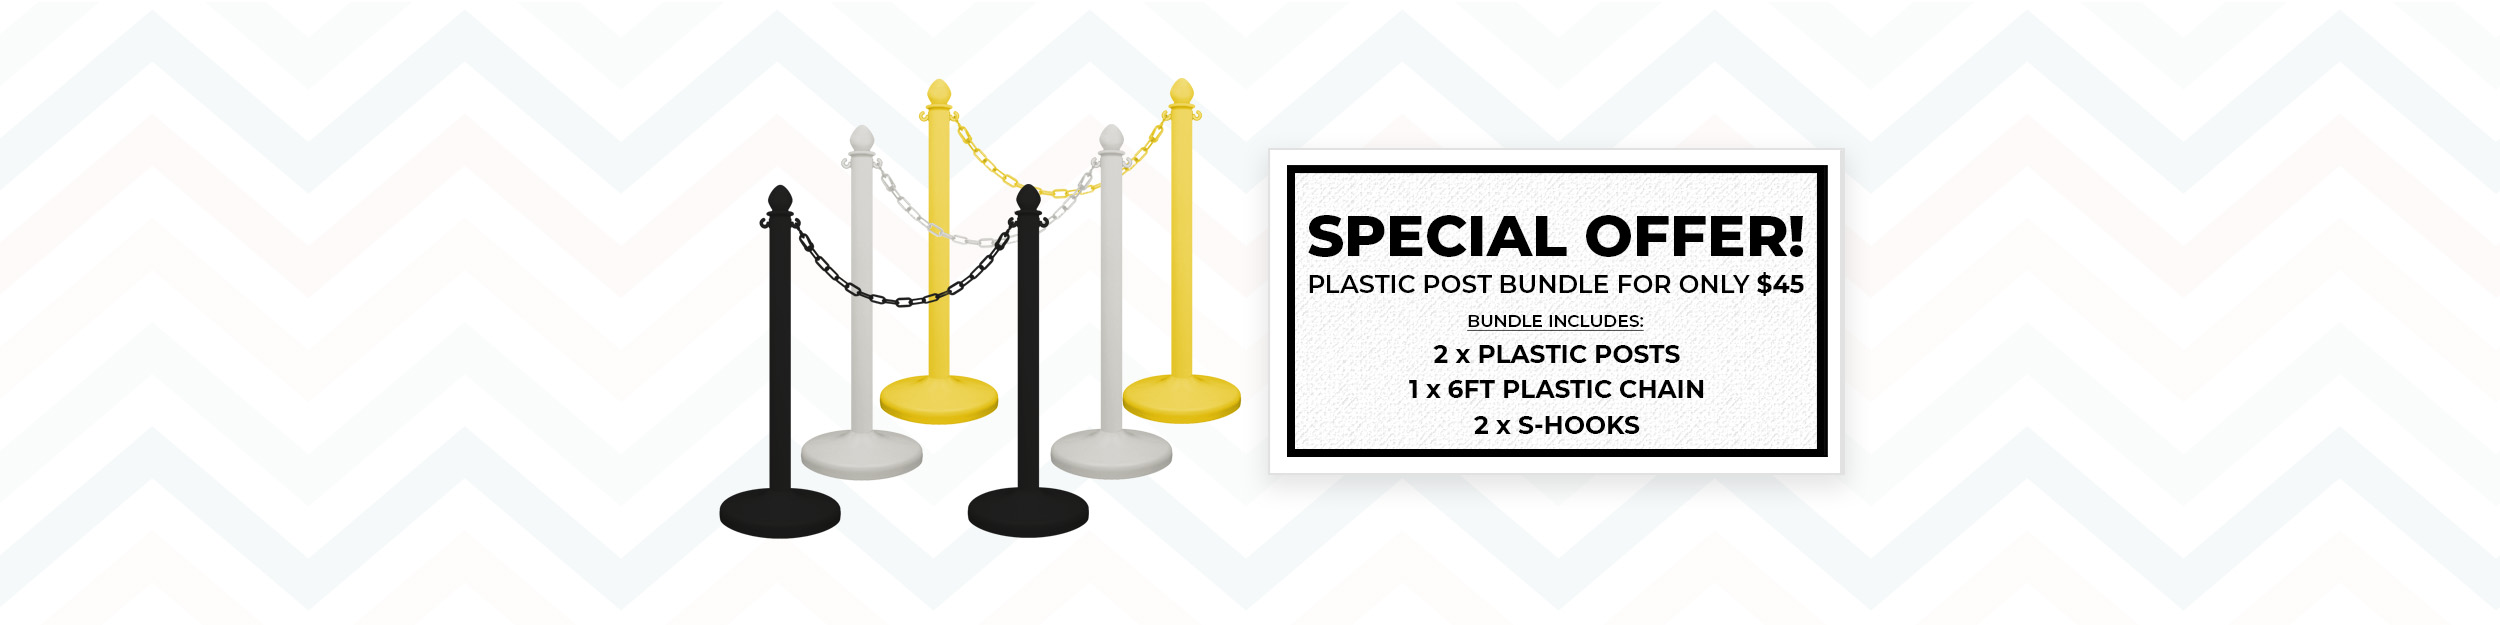 300 Plastic Post banner USE